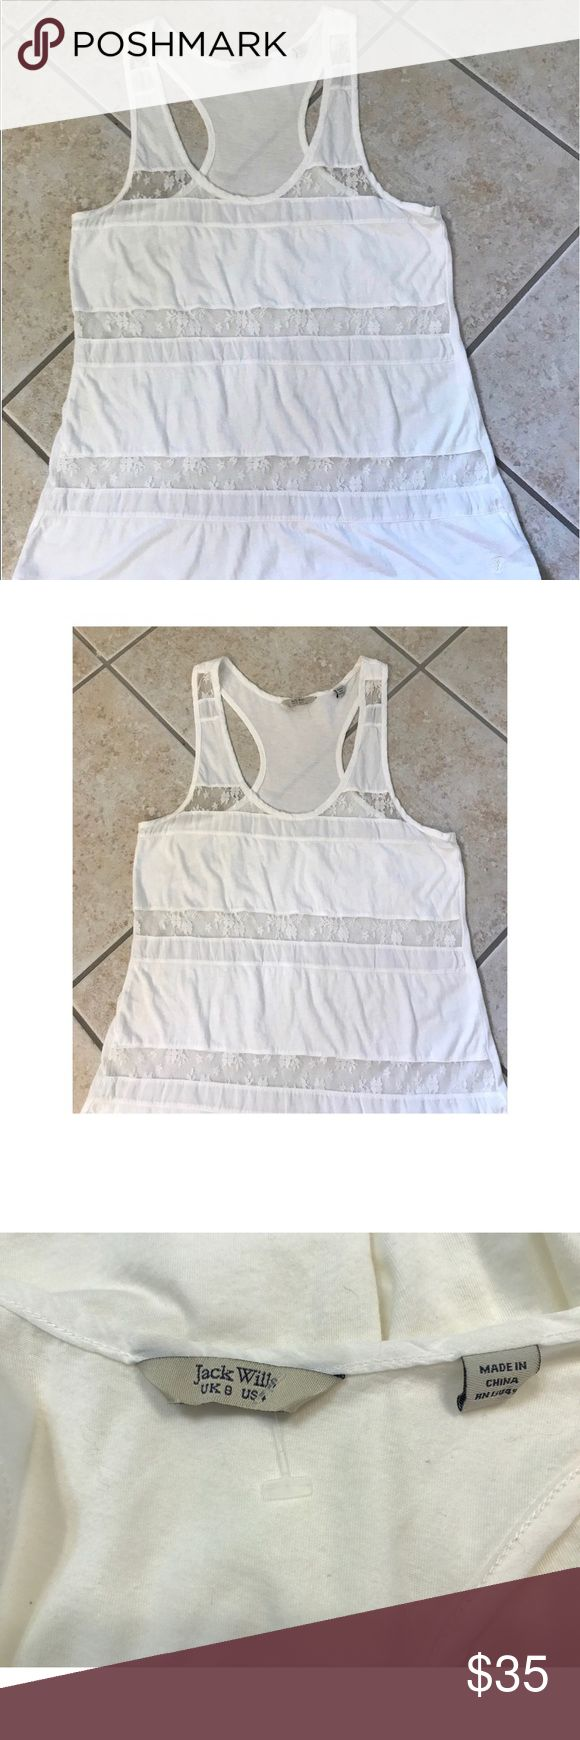 Jack Wills Cotton & Lace tank Jack Wills cotton and Lace white raced back Tank in excellent condition! Jack Wills Tops Tank Tops